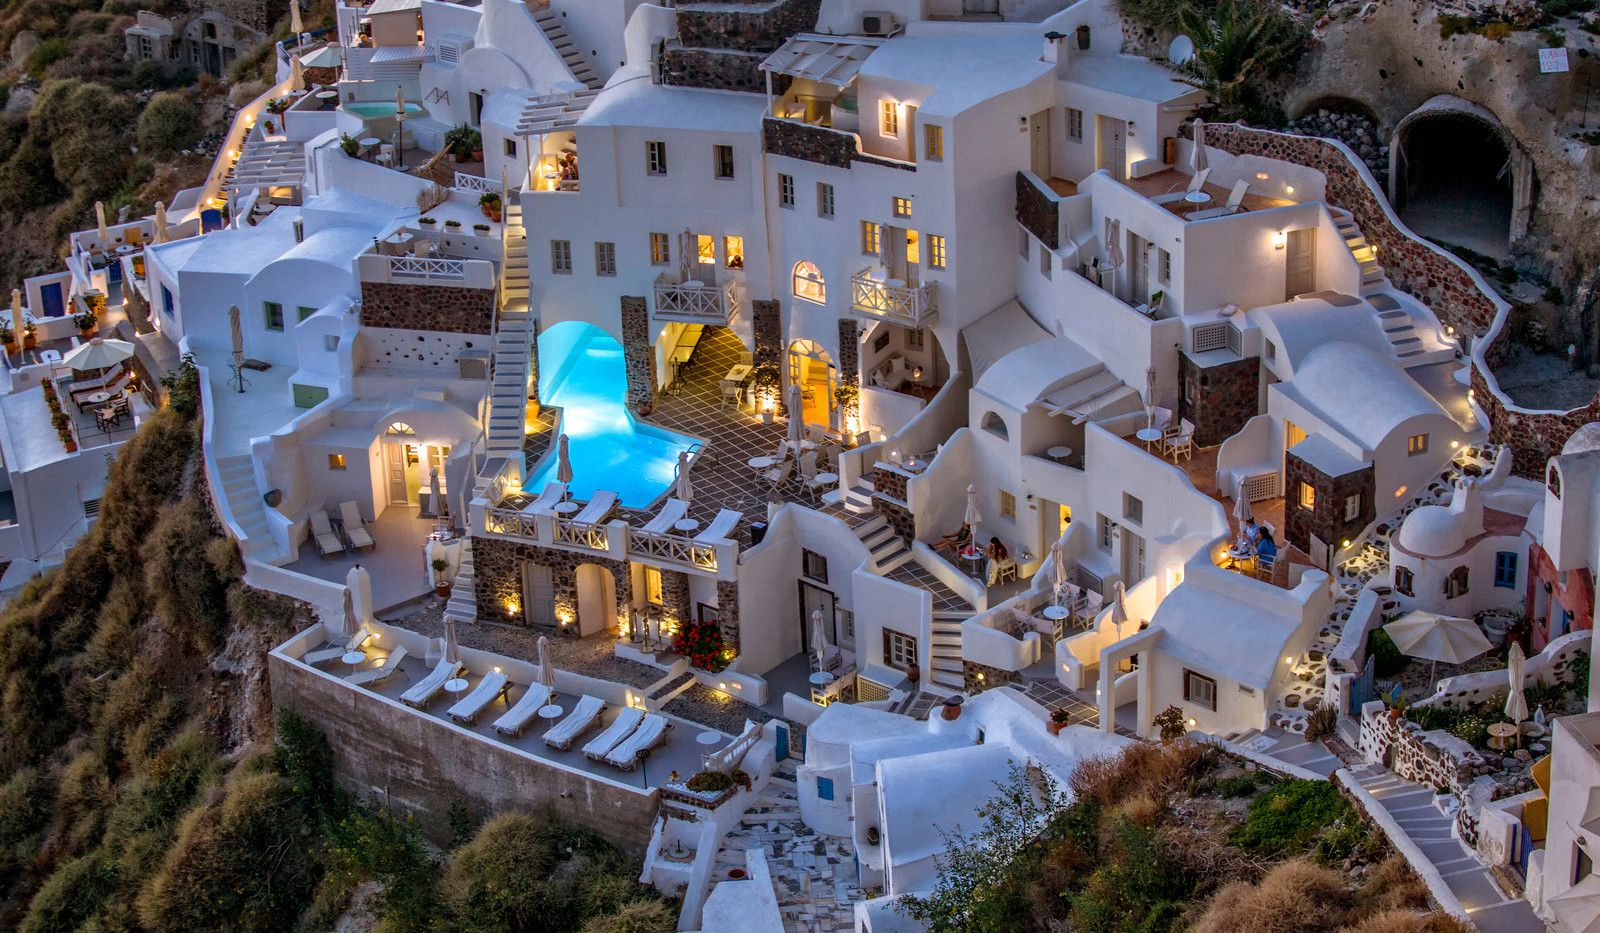 Canva - Oia Santorini Greece (1).jpg